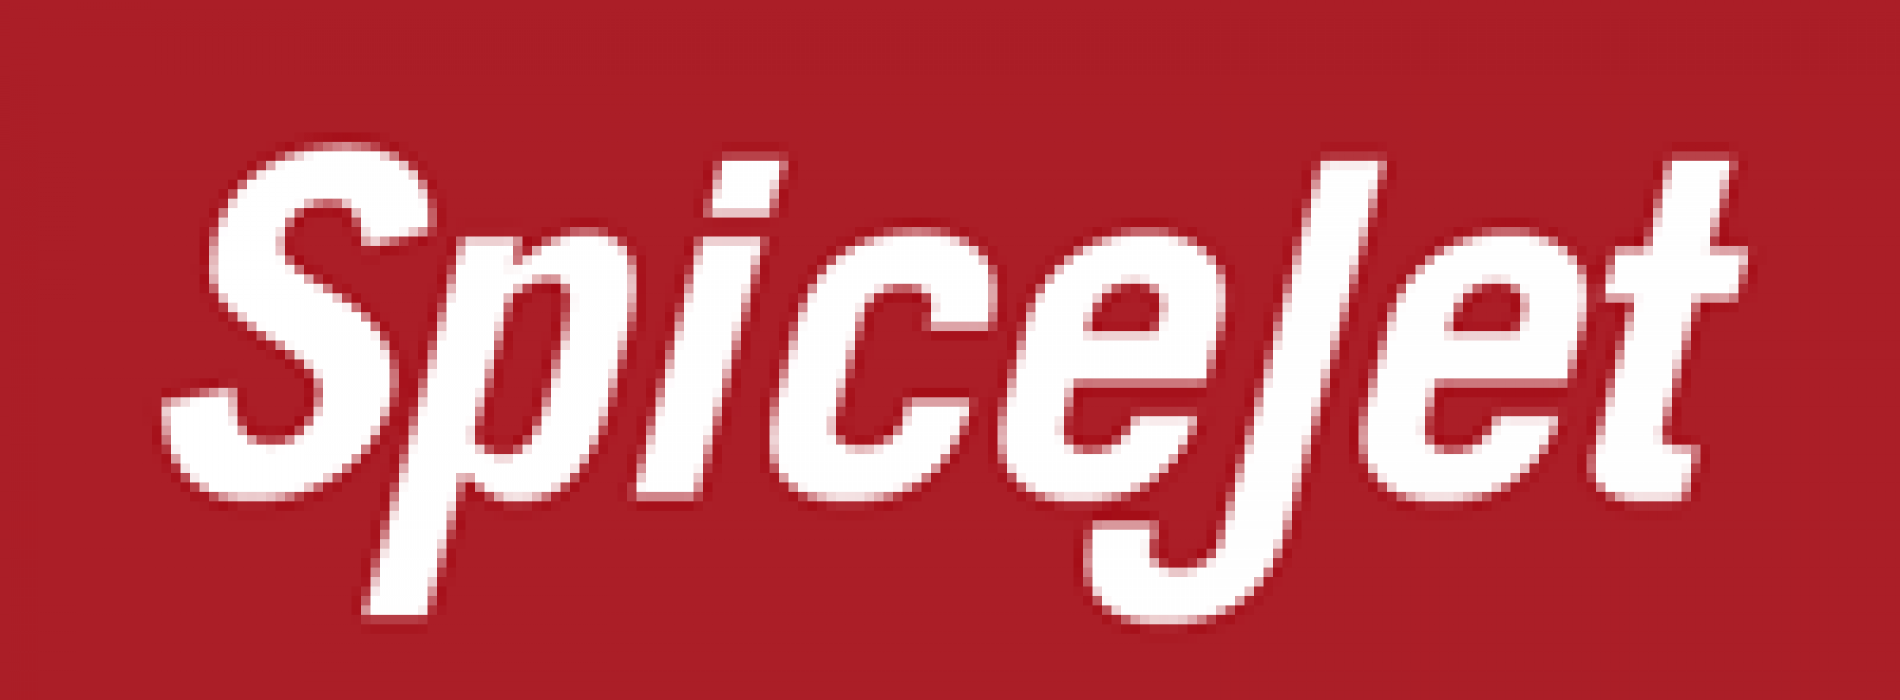 SpiceJet announces direct flights from Guwahati to Patna, Hyderabad